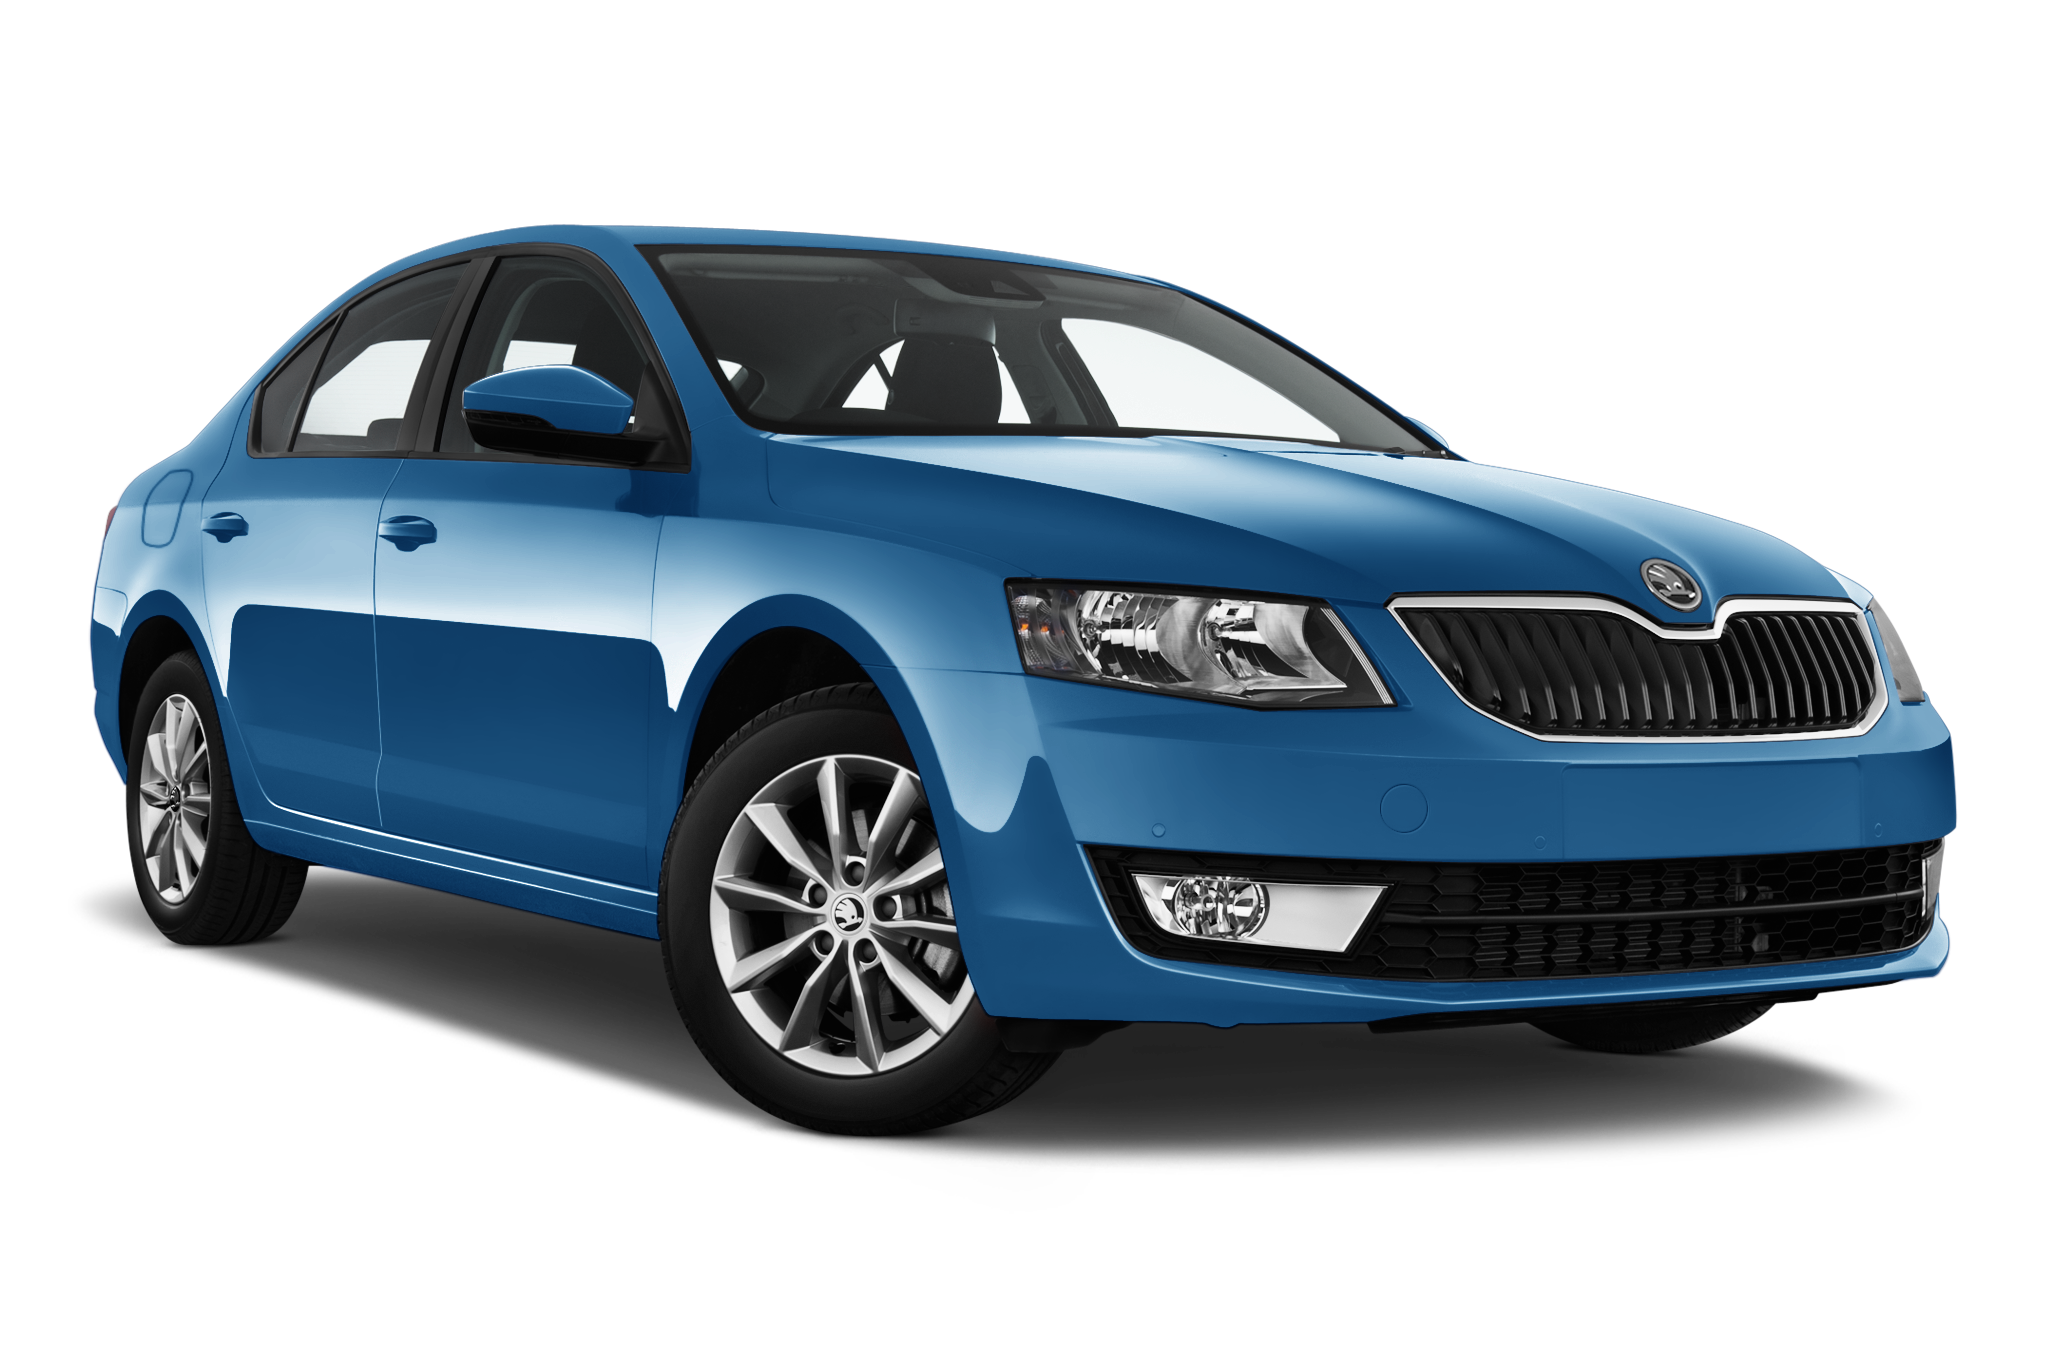 HOW DO WE NEGOTIATE SUCH LOW PRICES? How to Buy a Cheap New Skoda for Cash